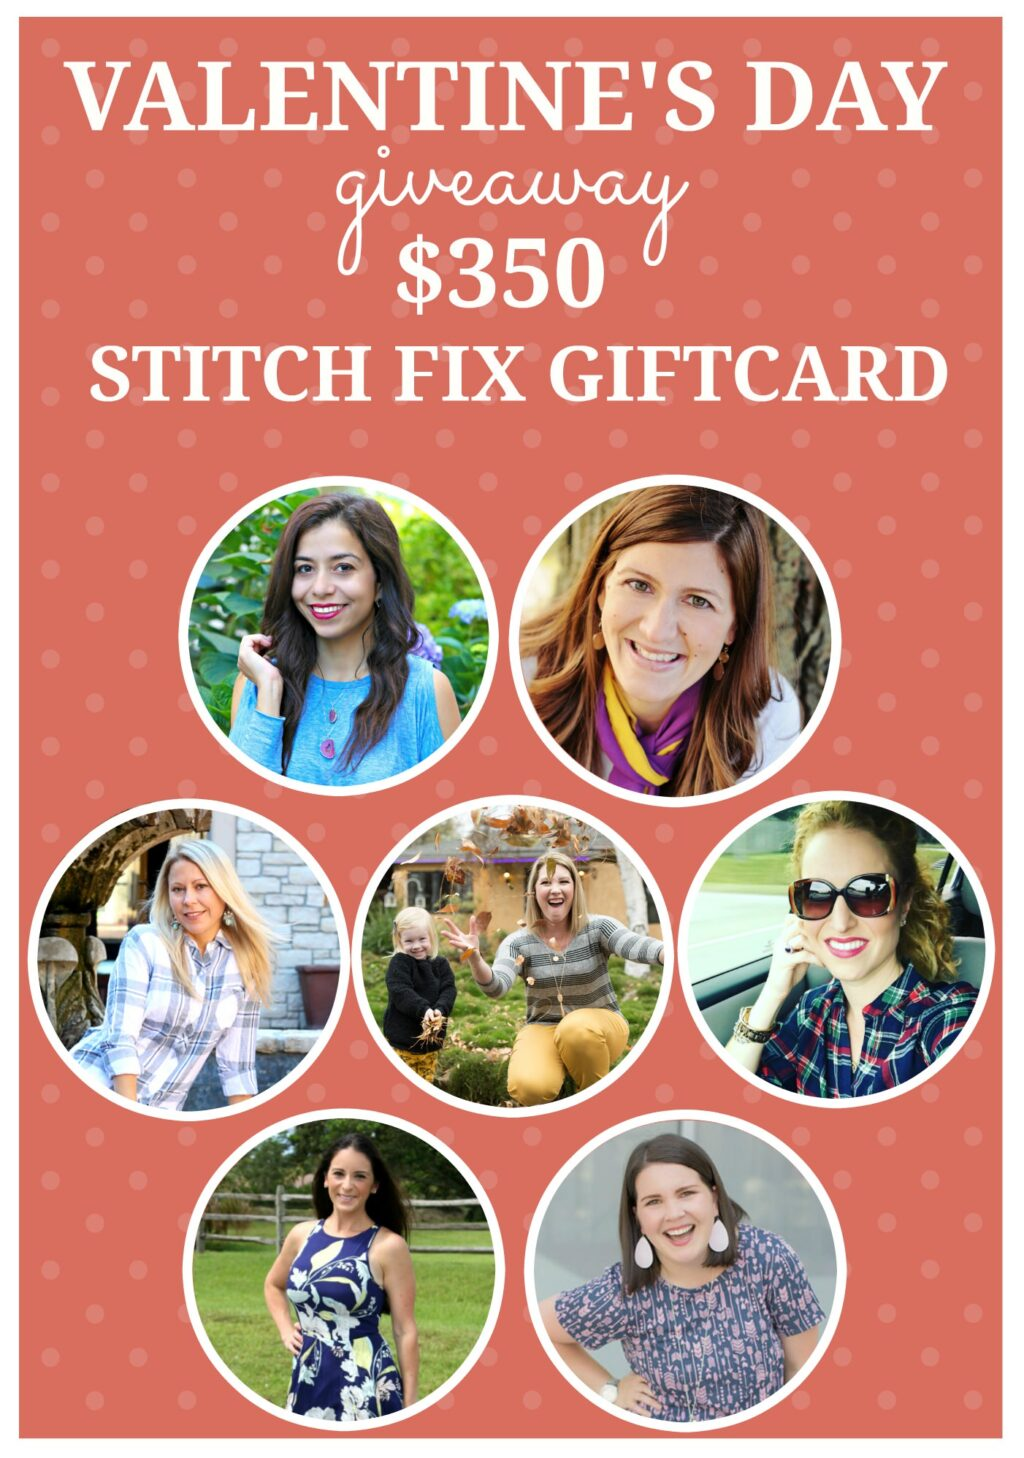 Stitch Fix Review: FAQs about Stitch Fix by Lipgloss and Crayons